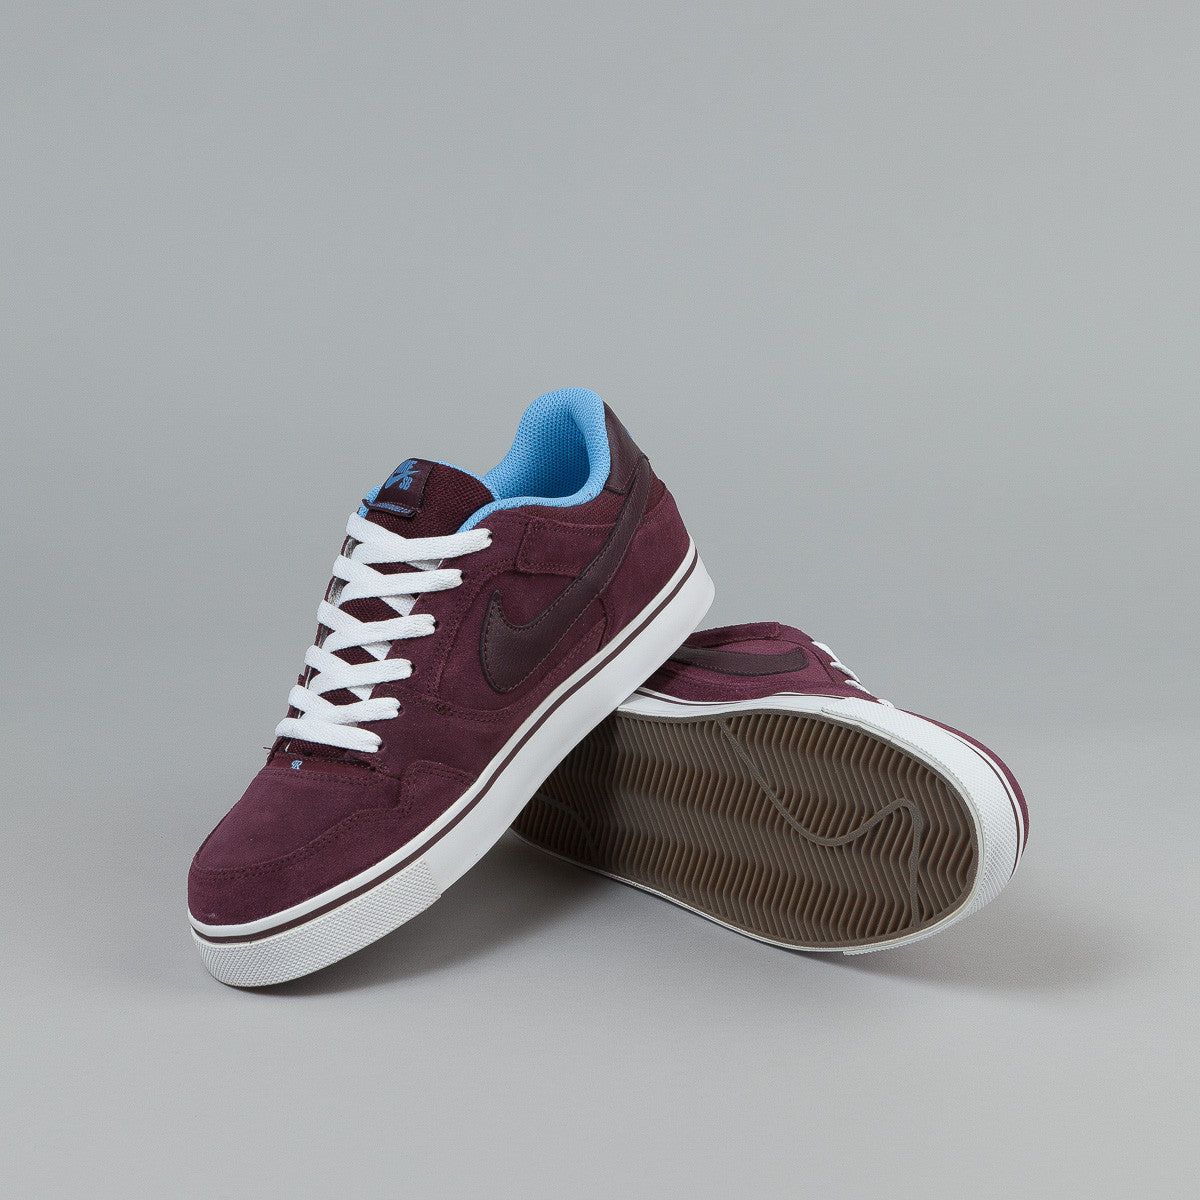 Nike SB Paul Rodriguez 2.5 Shoes - Deep Burgundy / University Blue